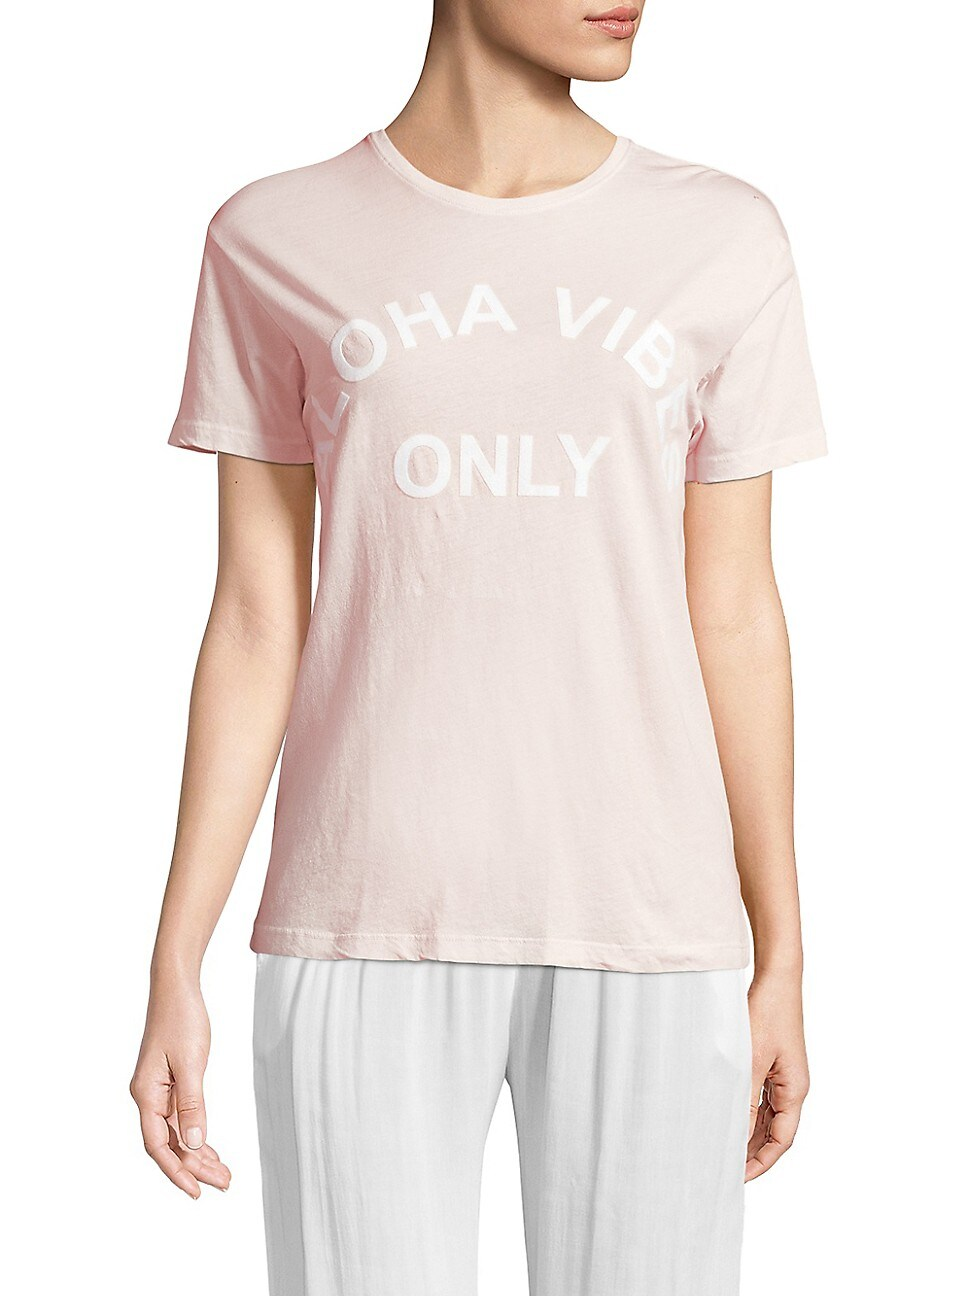 Mikoh WOMEN'S ALOHA VIBES ONLY TEE